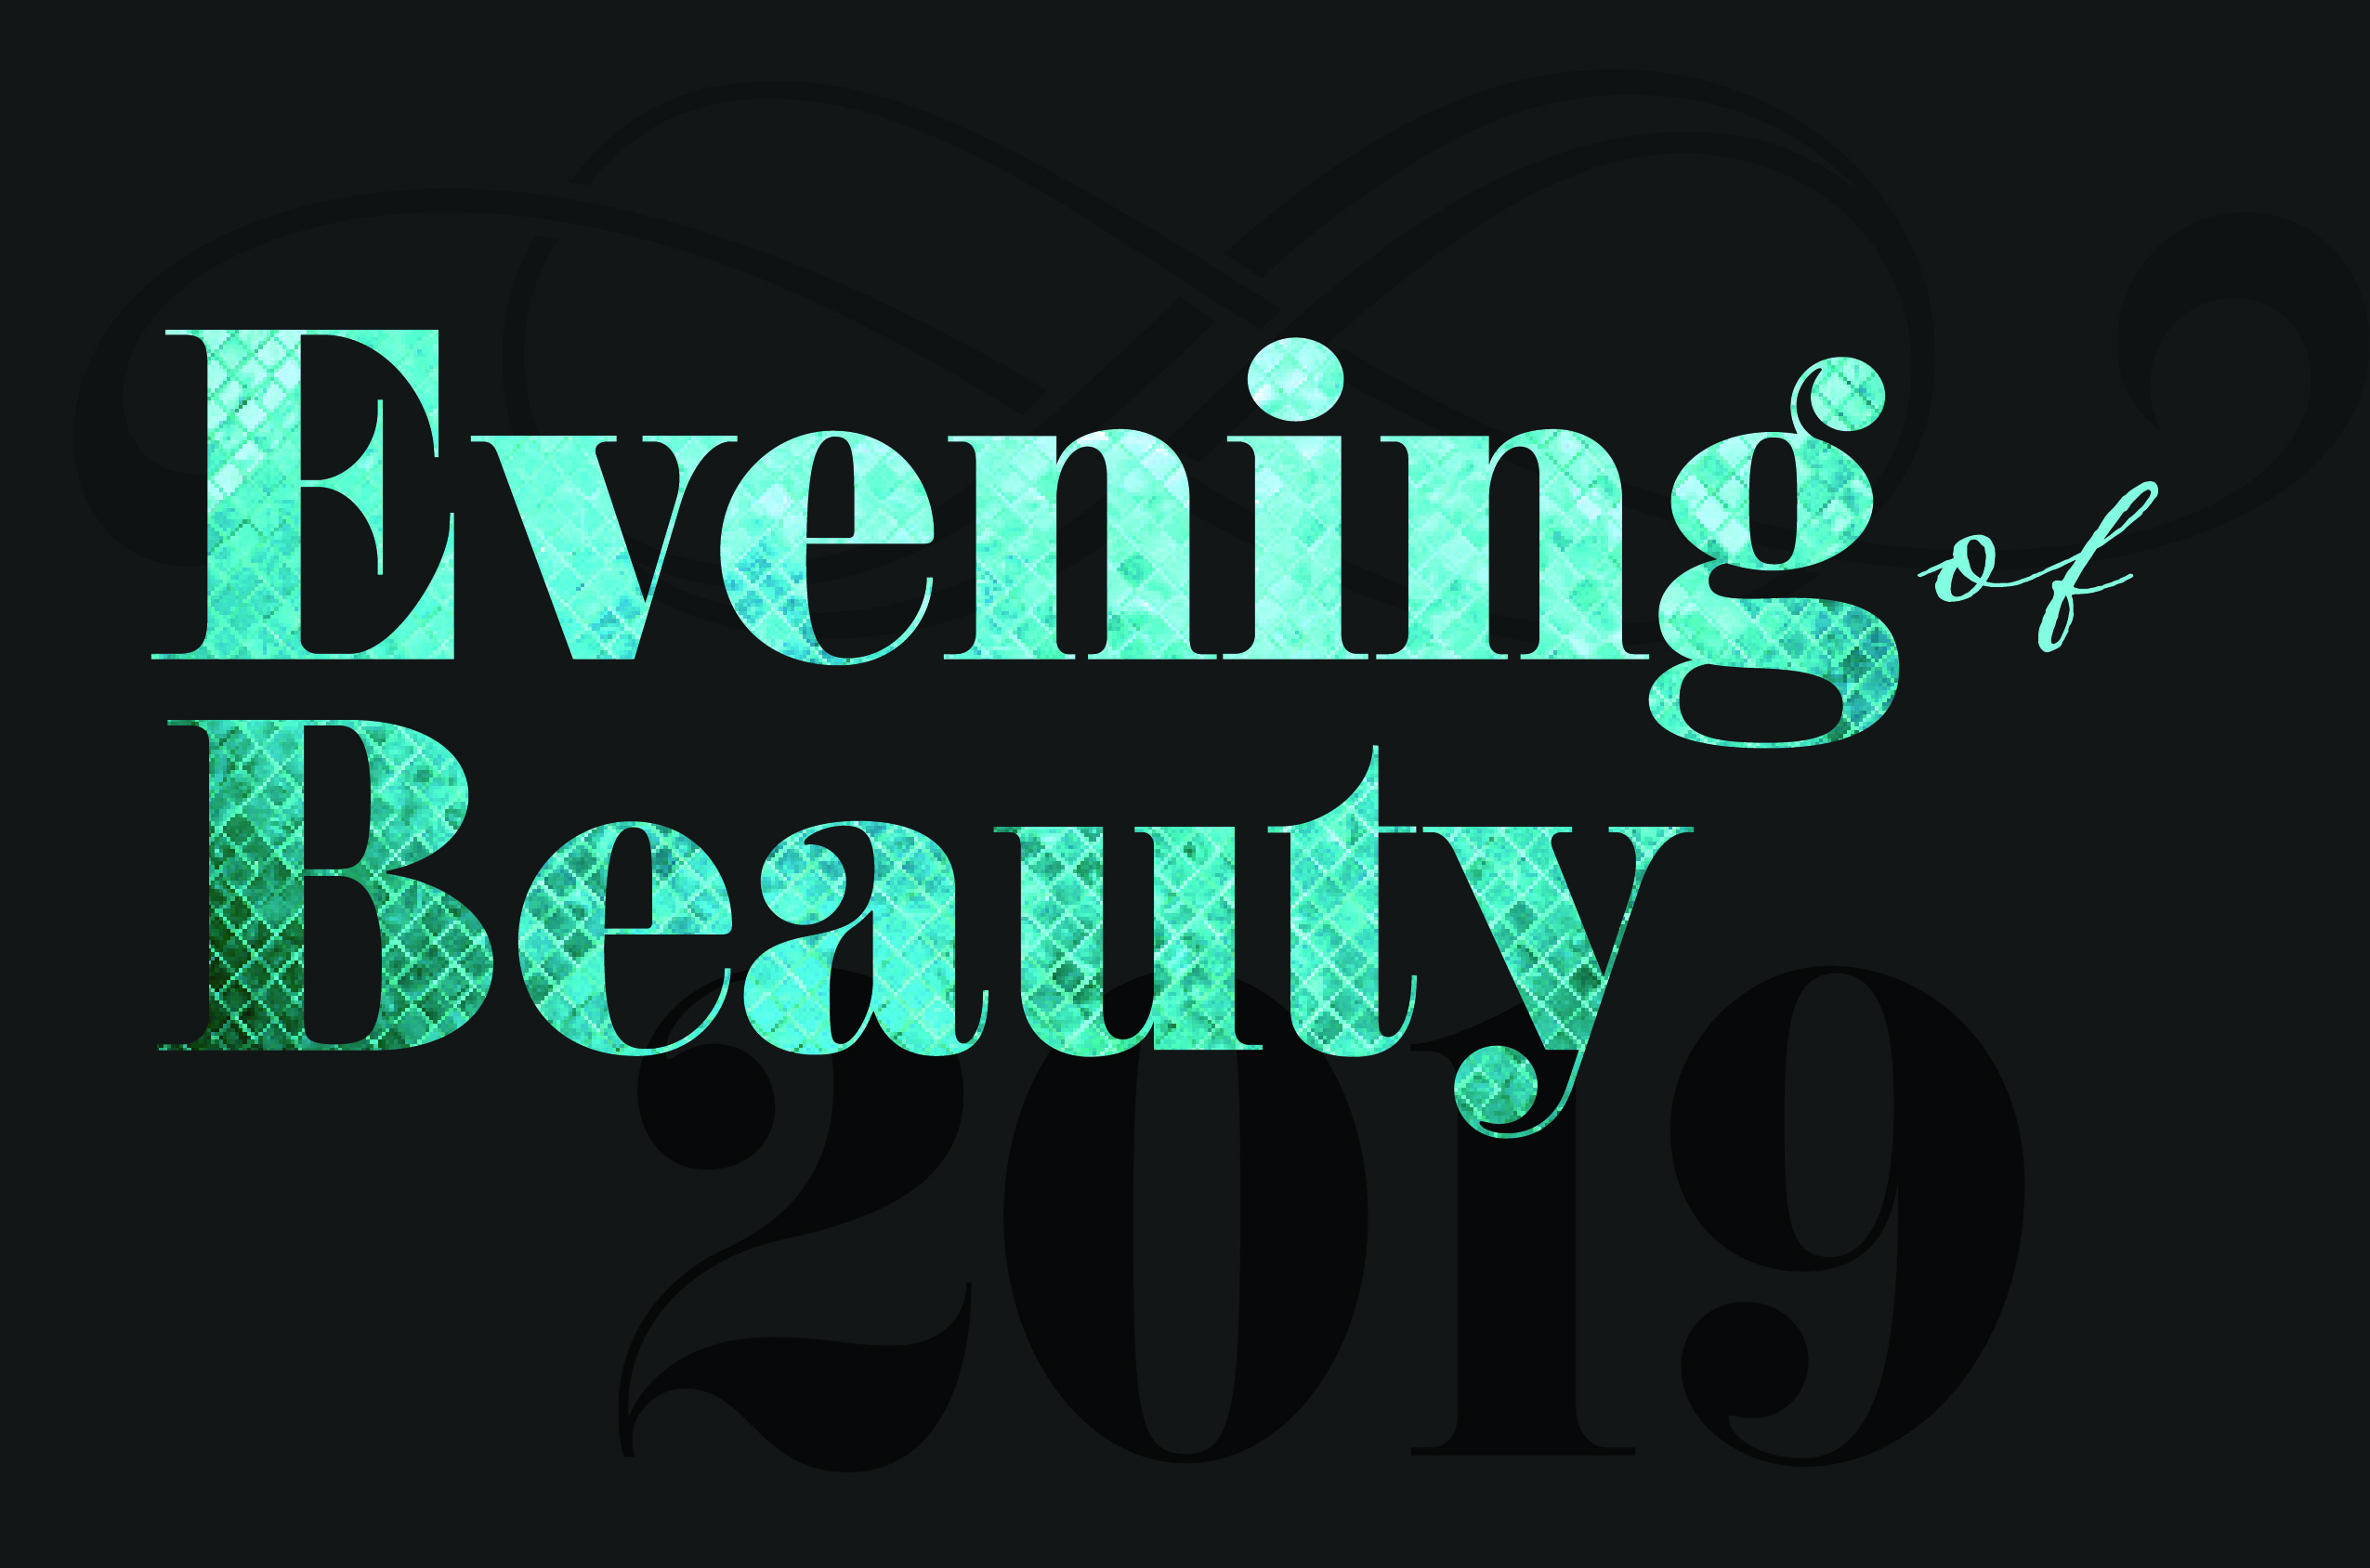 Announcing: the 2019 Week of Beauty Exclusive Pricing